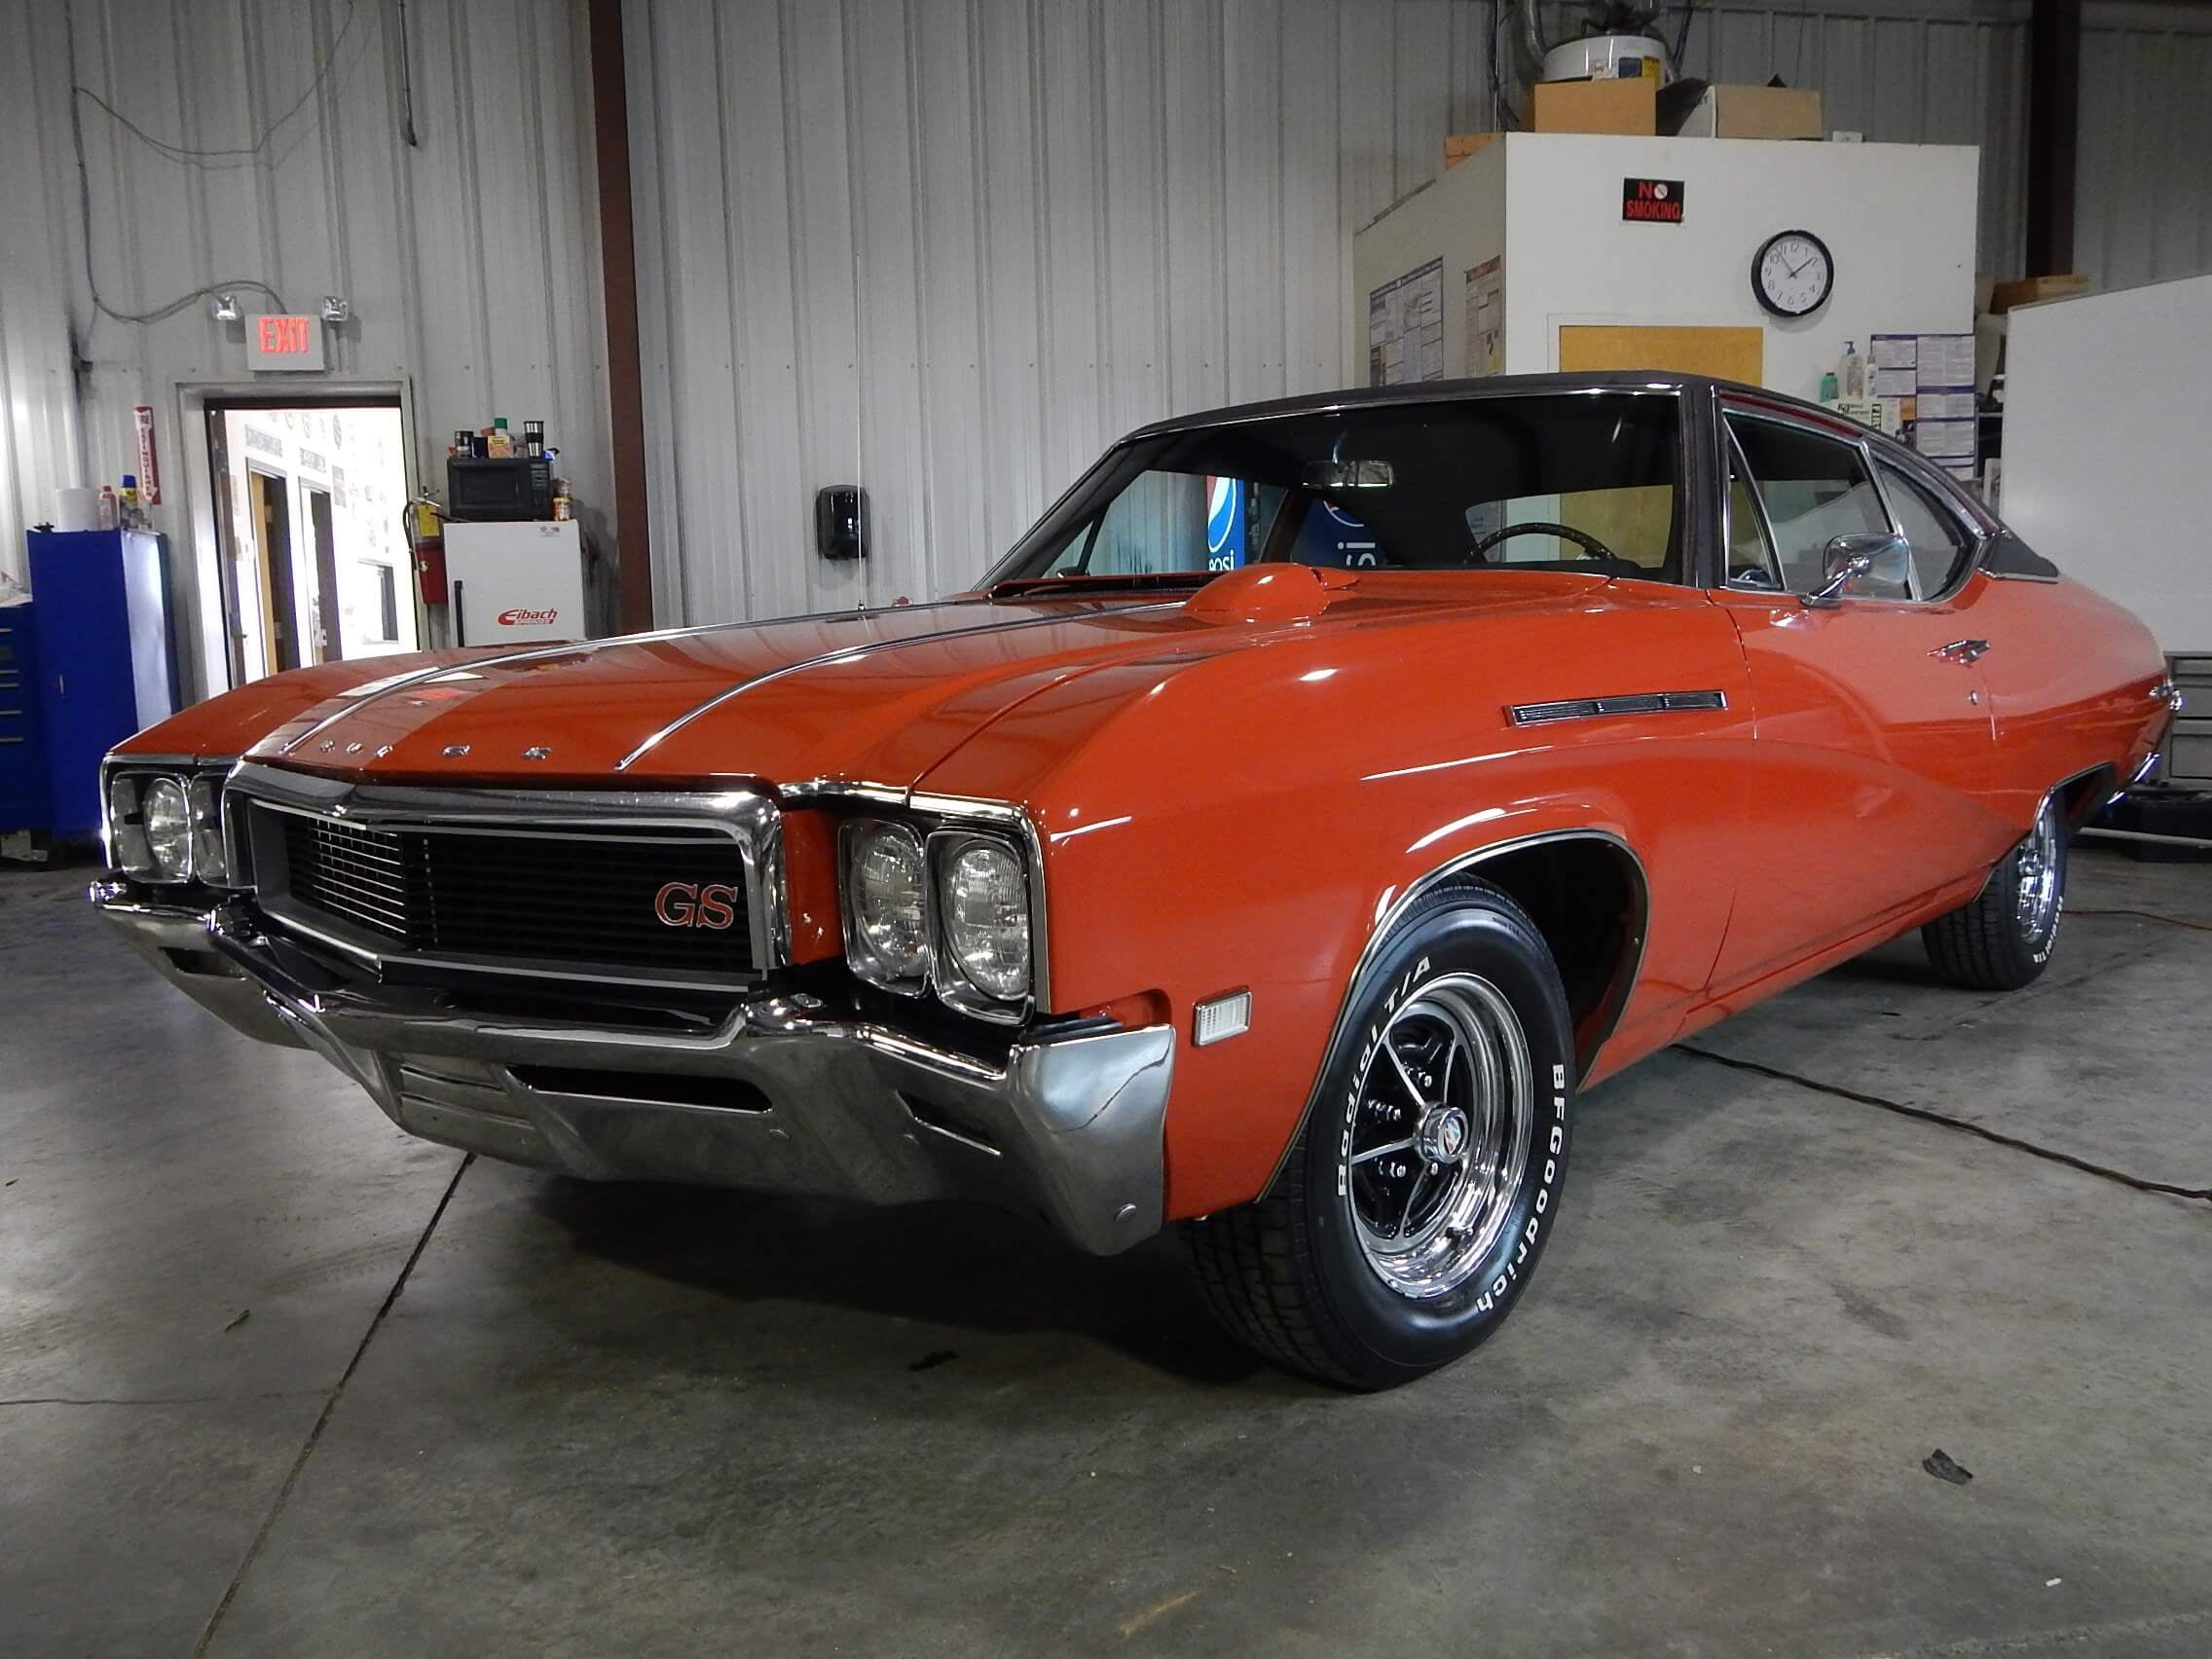 1968 Buick GS 350 red.JPG